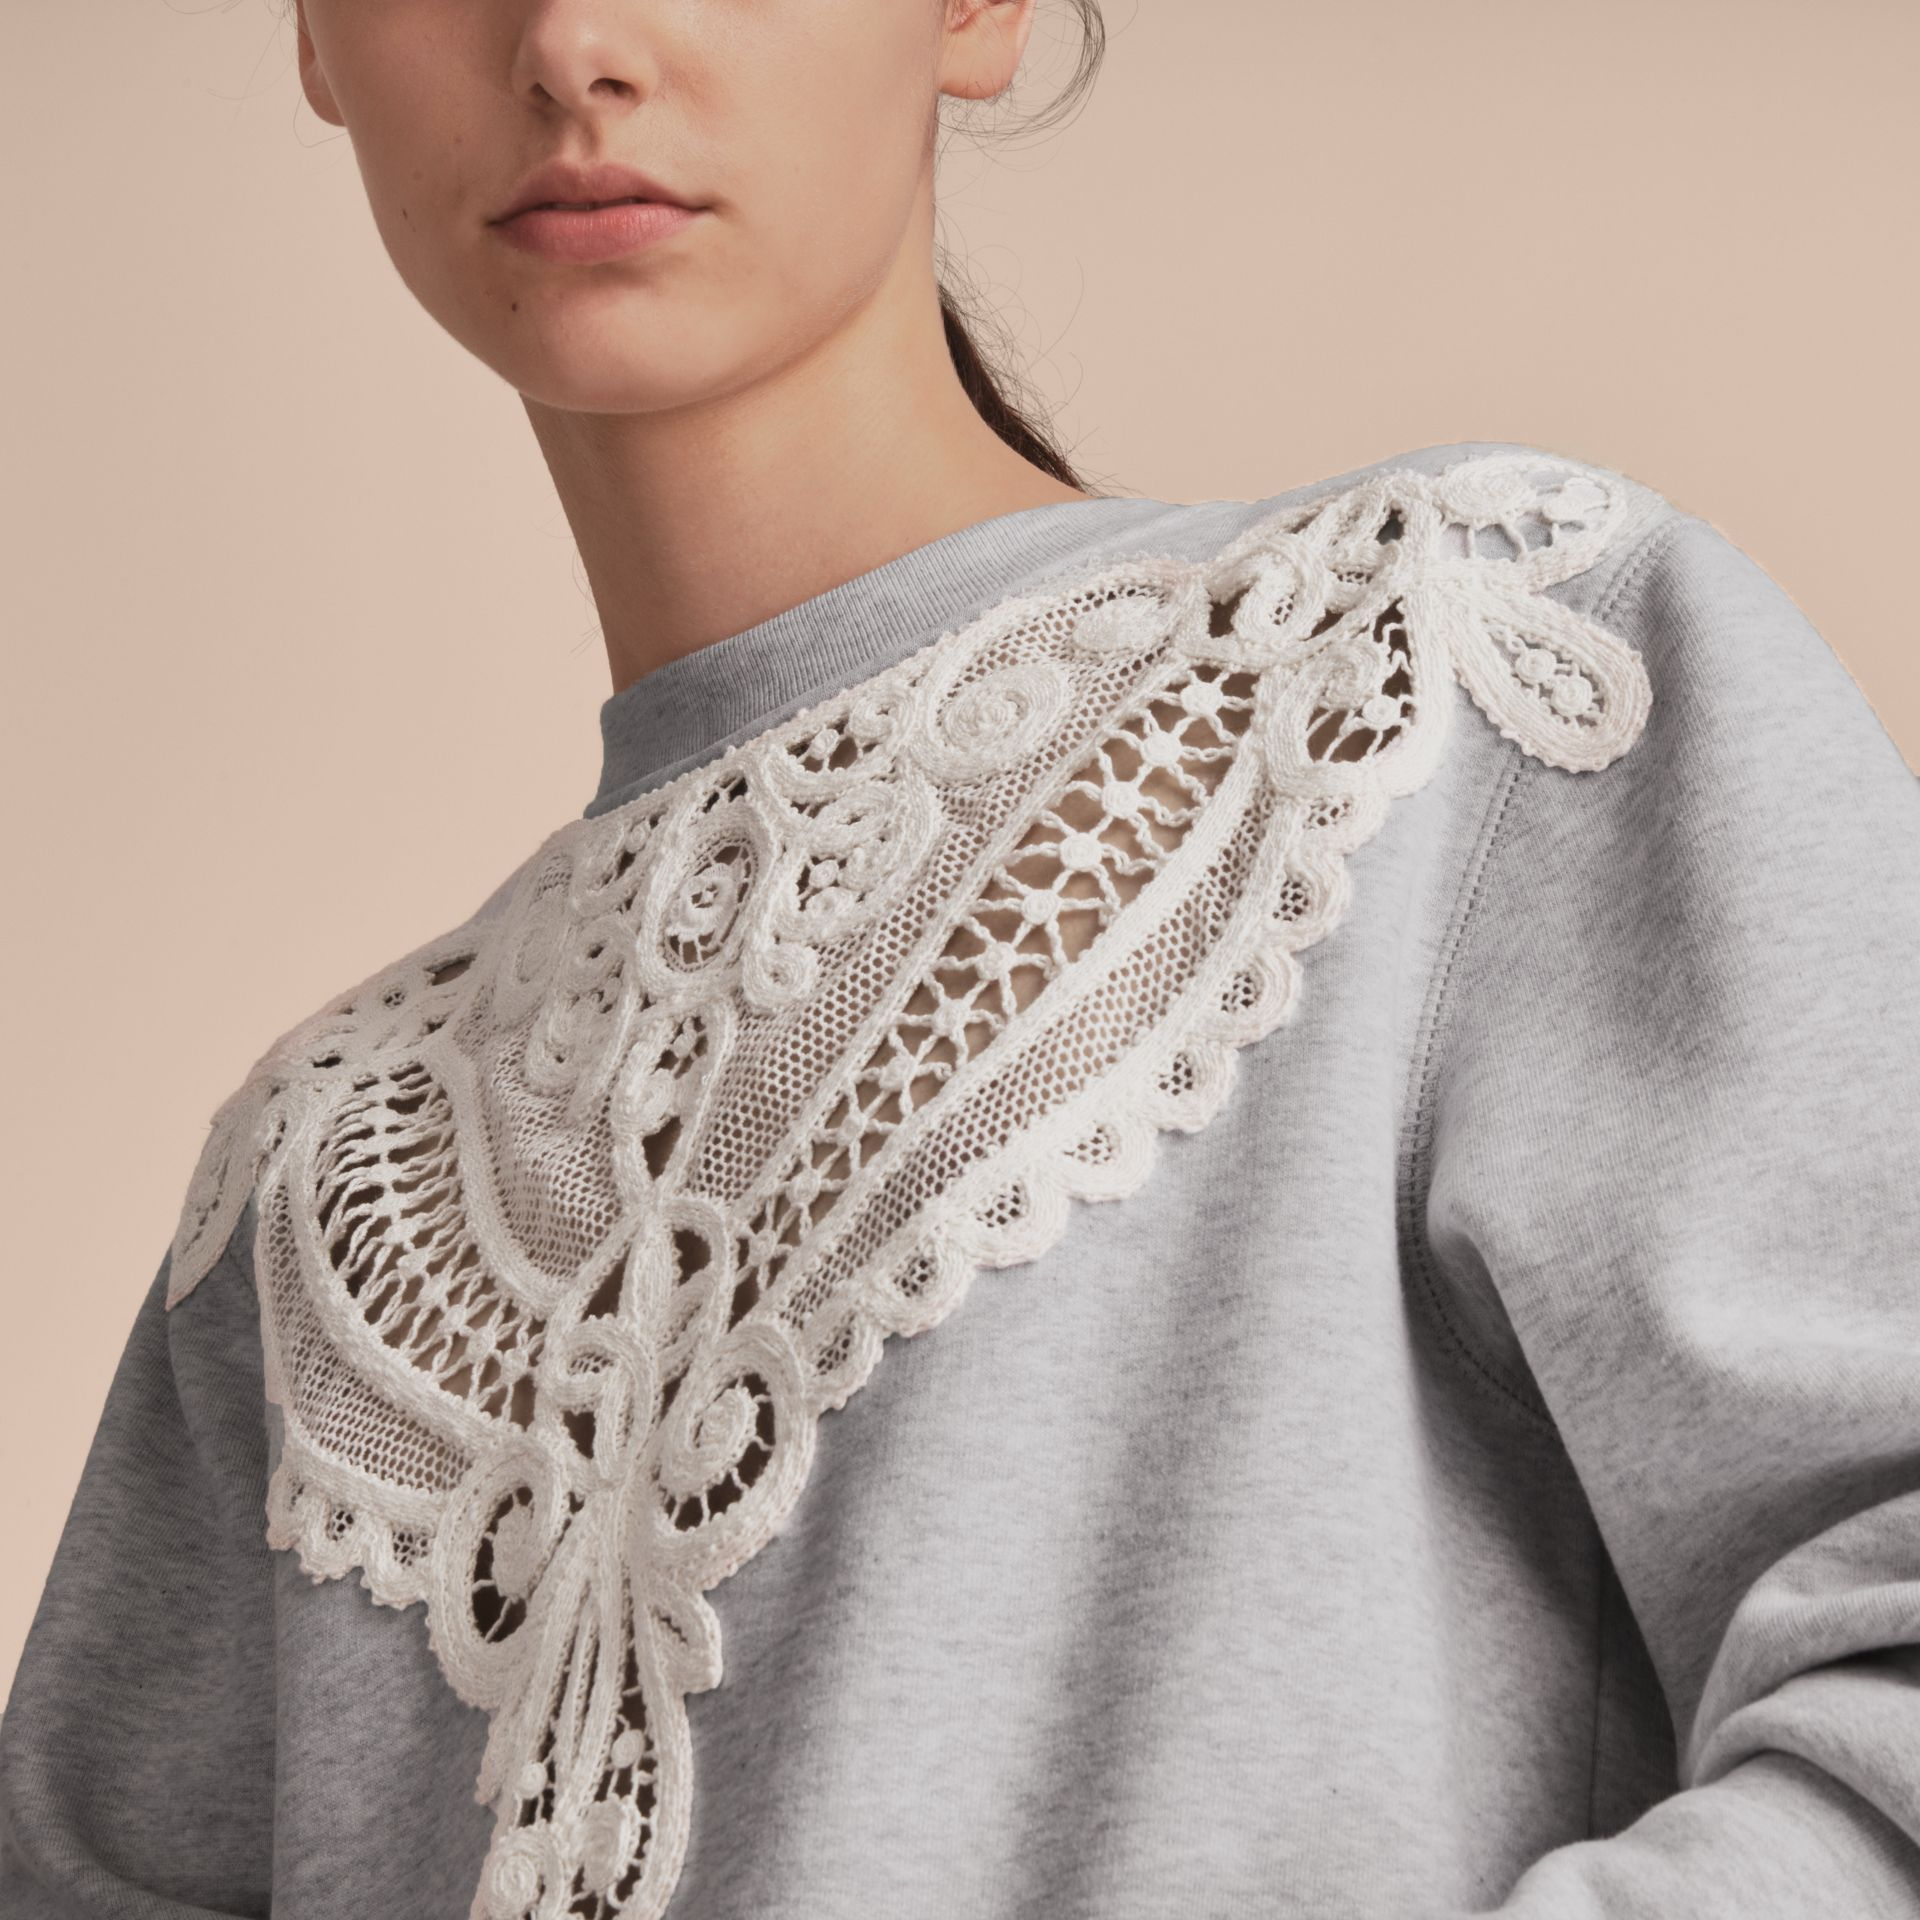 Unisex Lace Cutwork Sweatshirt in Light Grey Melange - Women | Burberry Singapore - gallery image 6